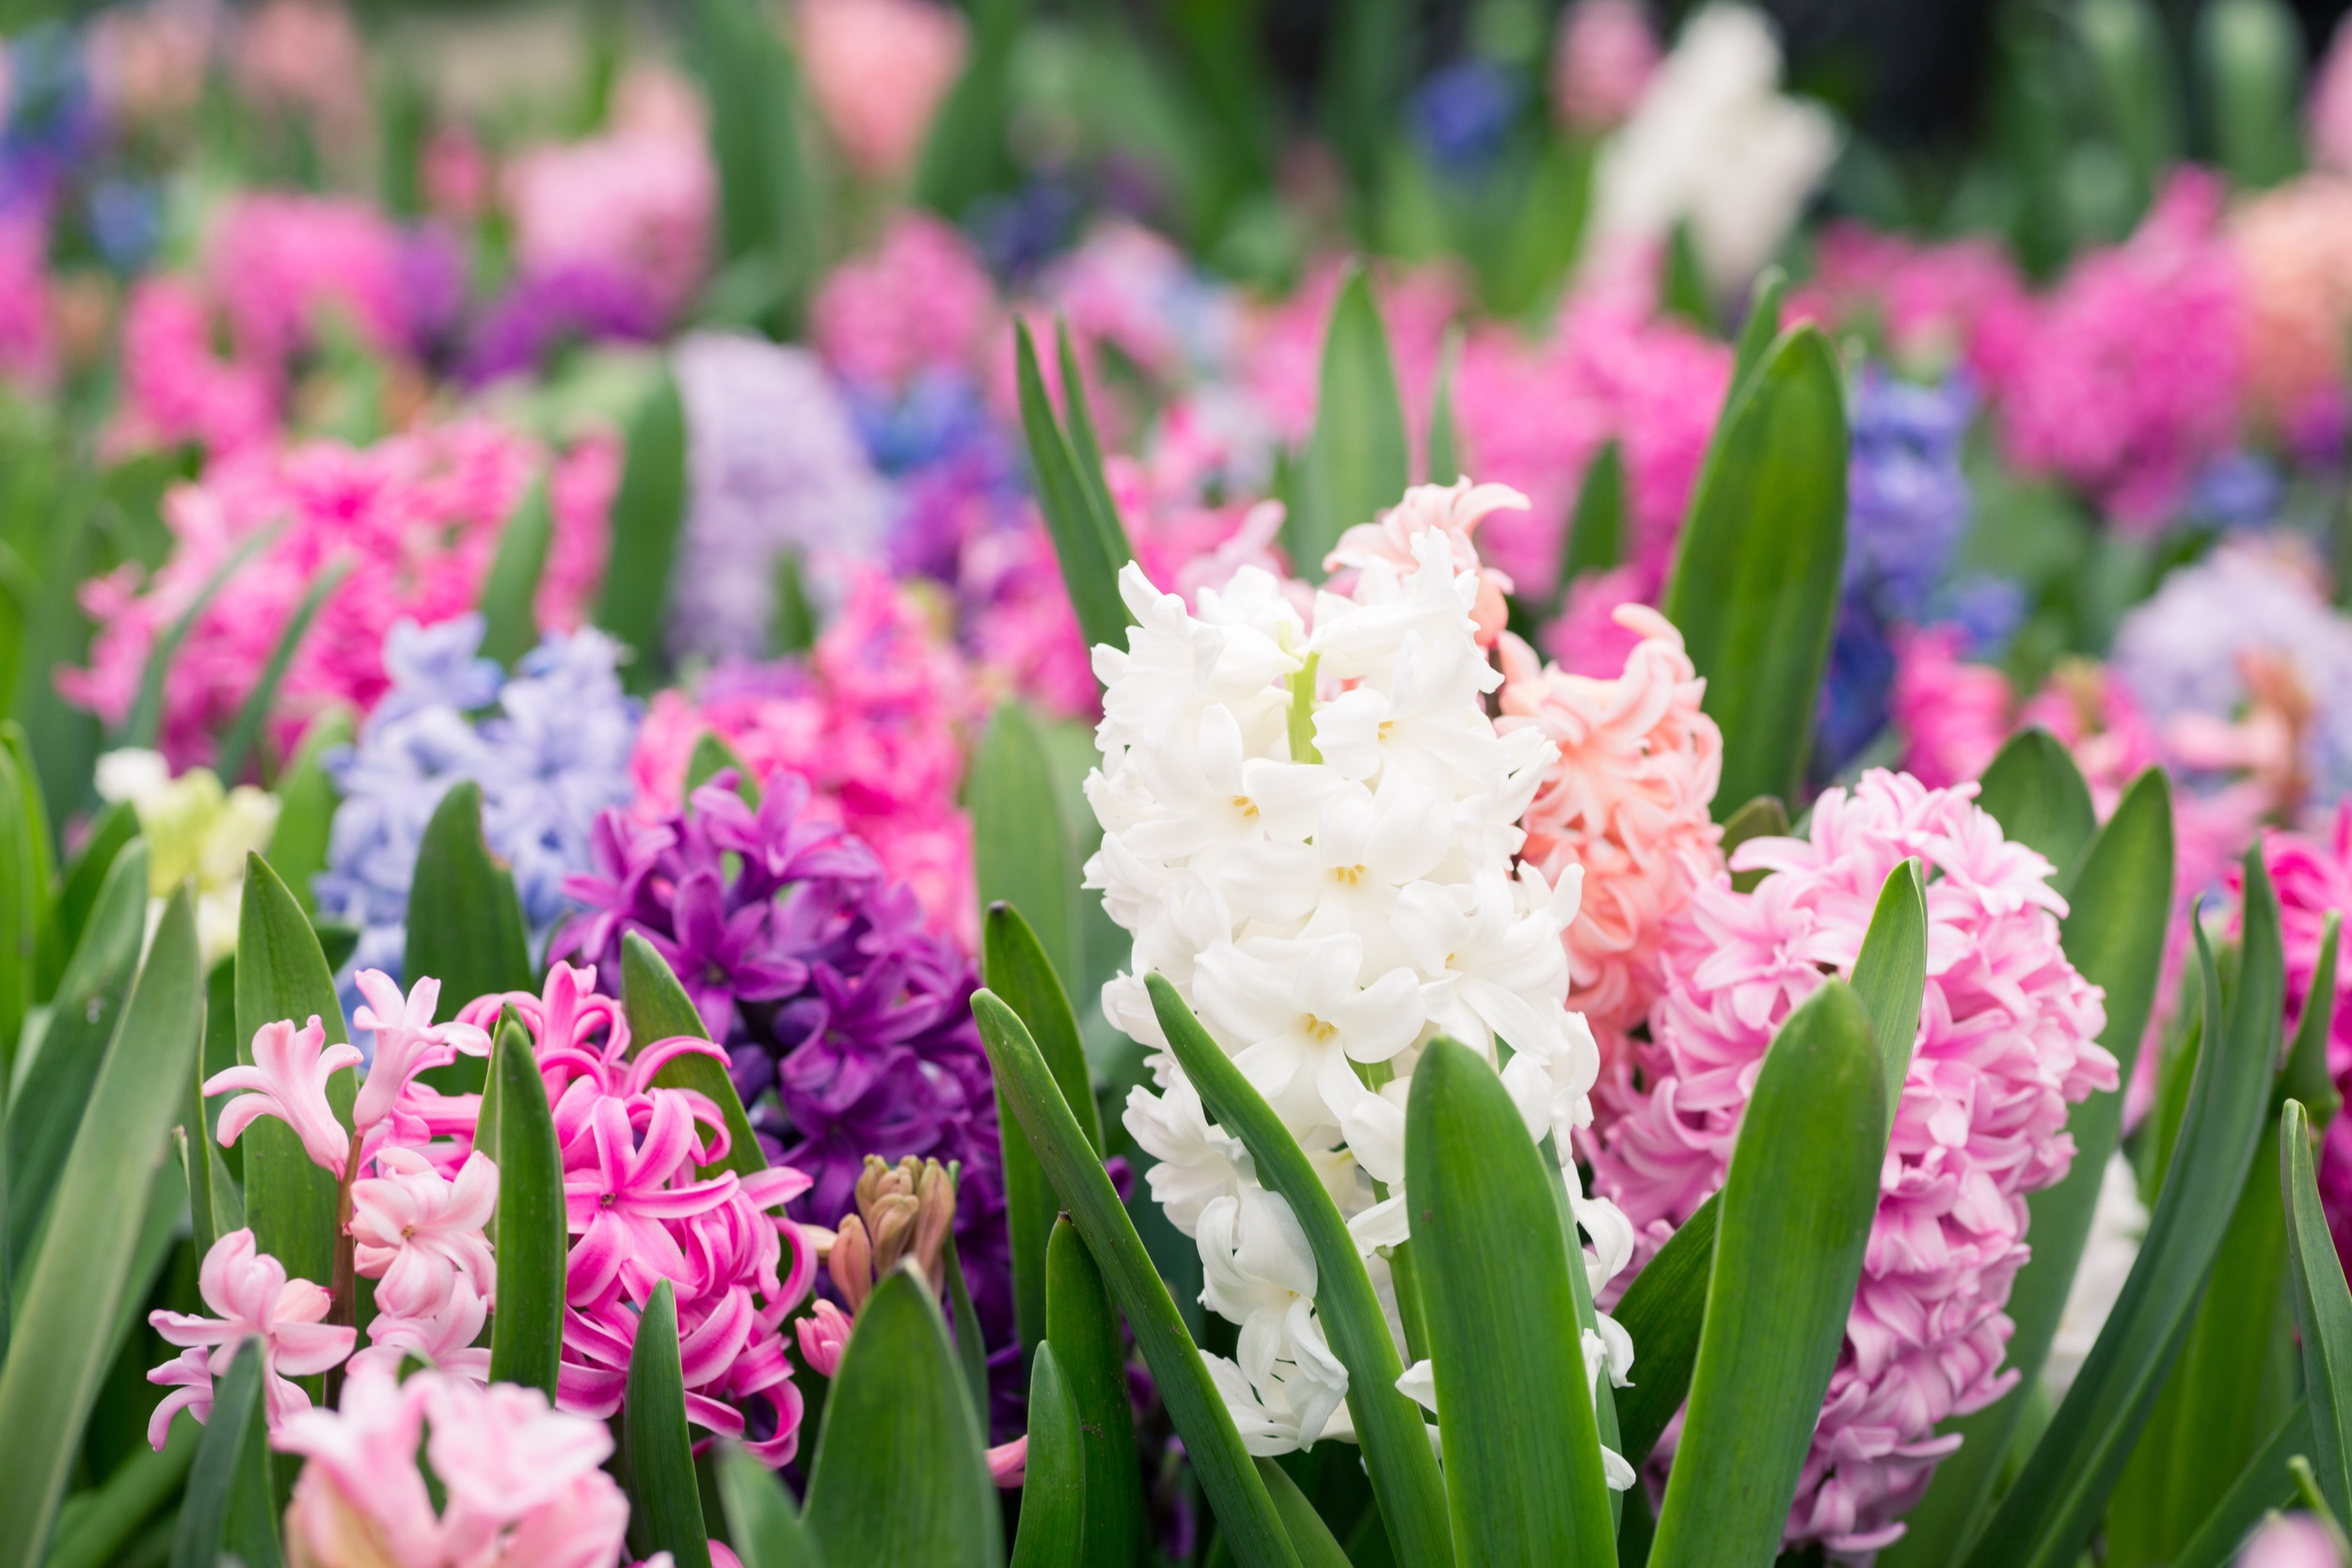 Stock Up on Beautiful Blooms in Time for Mother's Day